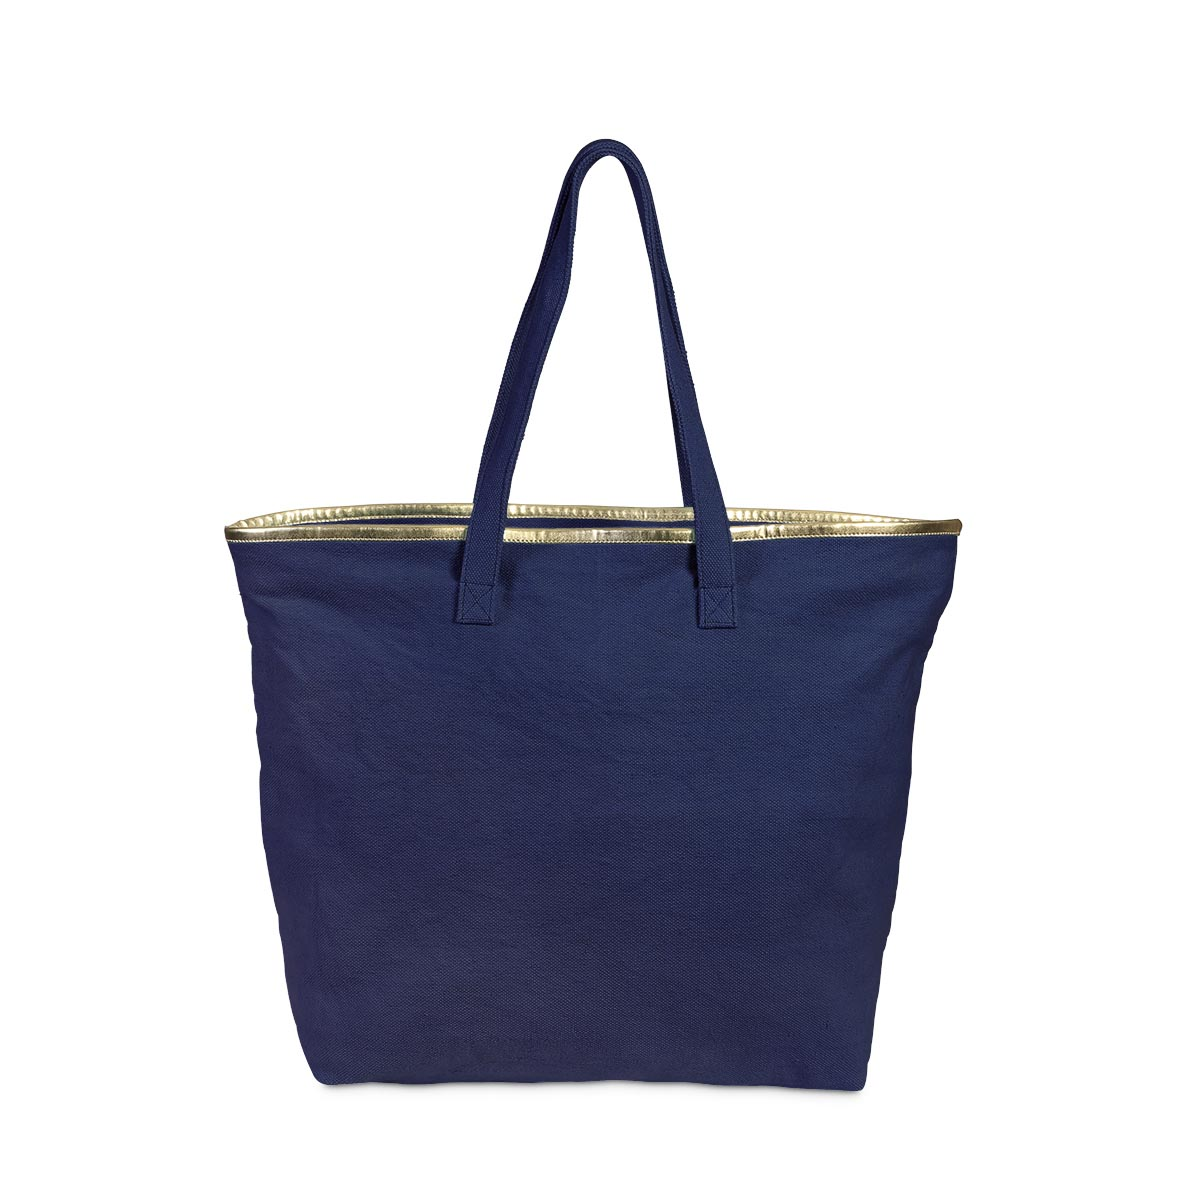 total tote navy, gold trim